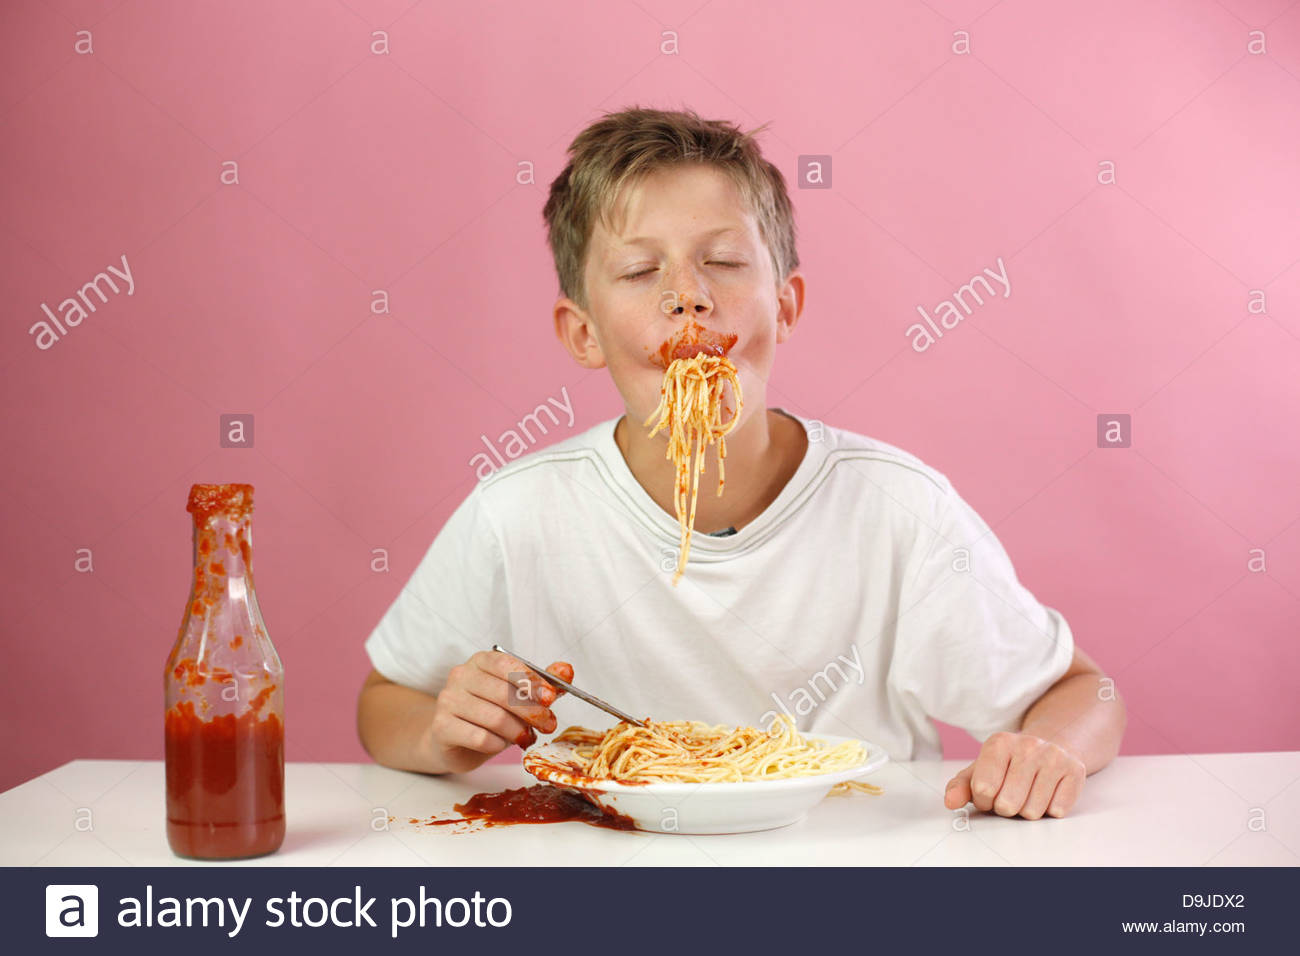 Boy eating spaghetti - Stock Image